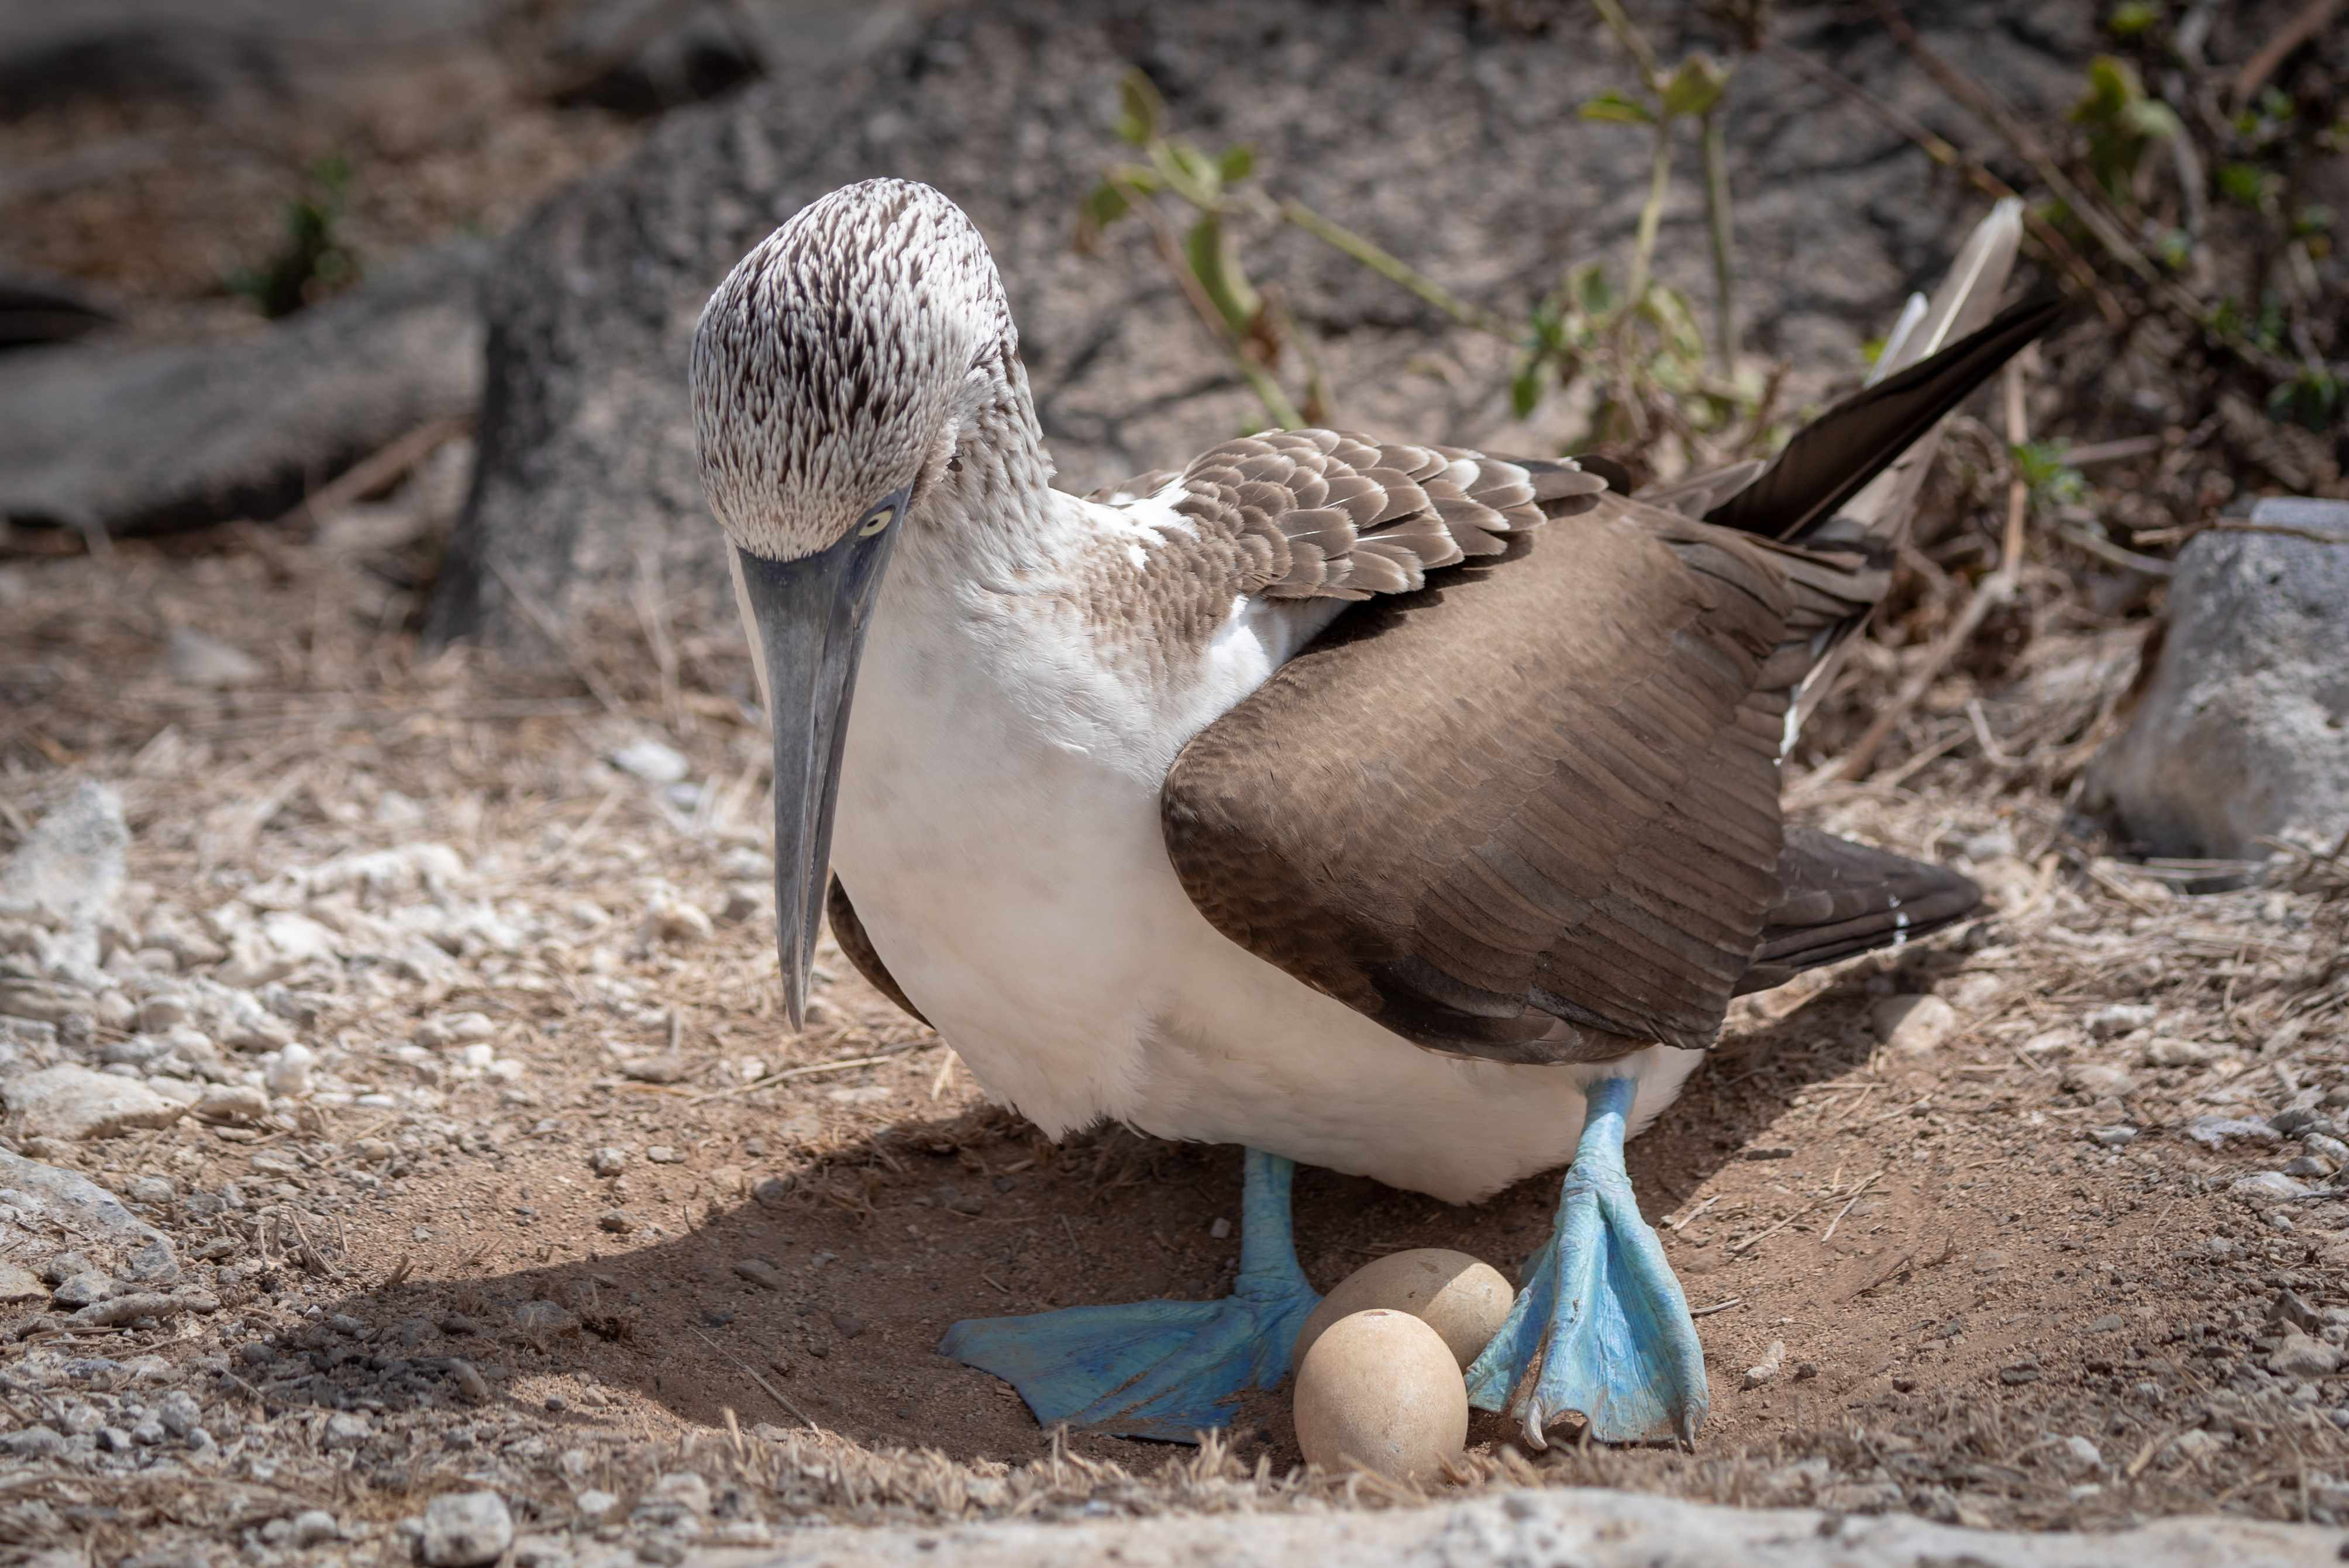 Blue-footed booby with eggs. © James Stone/Getty